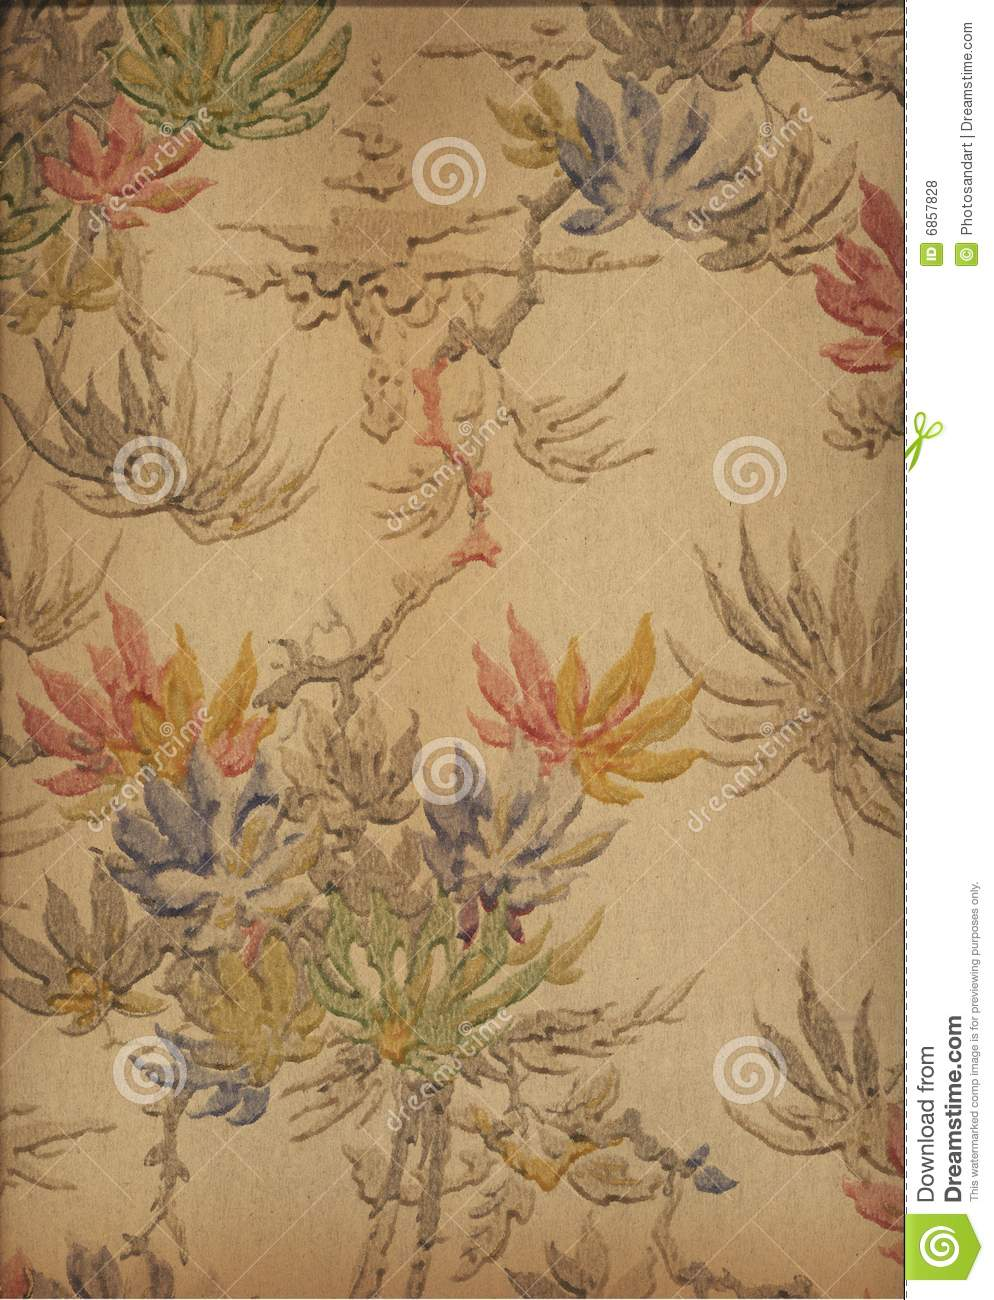 Falling Feathers Wallpaper Vintage Art Deco Wallpaper Stock Illustration